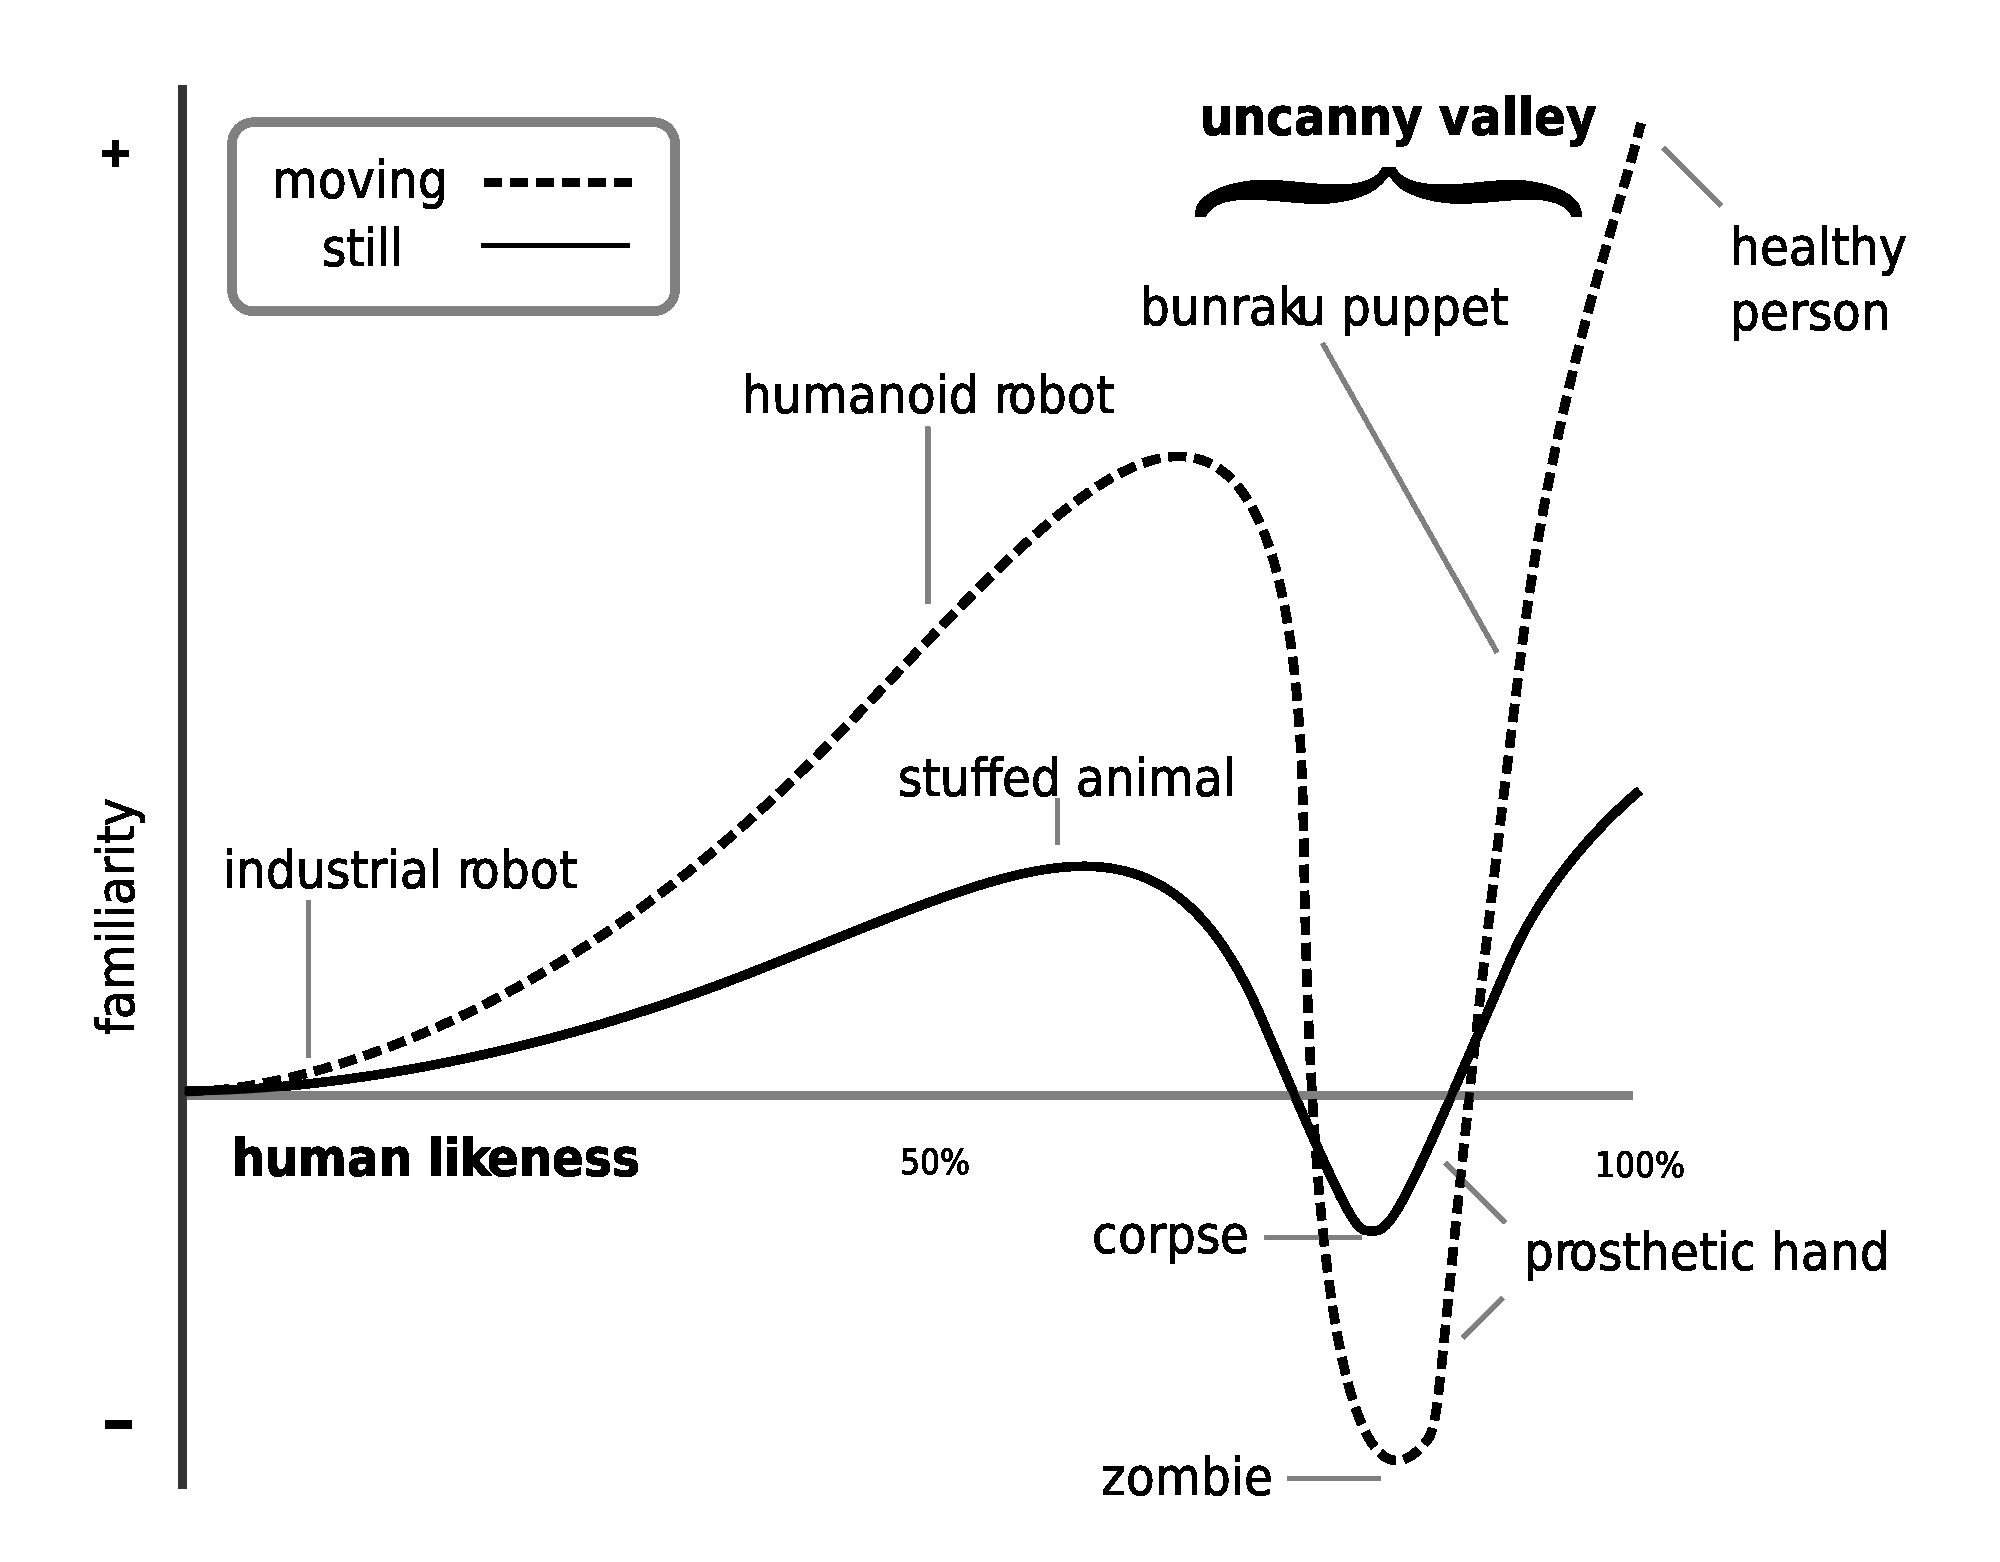 Figure 2: A visualization of the uncanny valley effect described by Masahiro Mori. As objects become more human-like (x-axis), feelings of familiarity will increase (y-axis). However, at a certain point, the positive feelings will dramatic decrease when the object is human-like, but not quite human. By Smurrayinchester. Licensed under CC BY-SA 3.0.